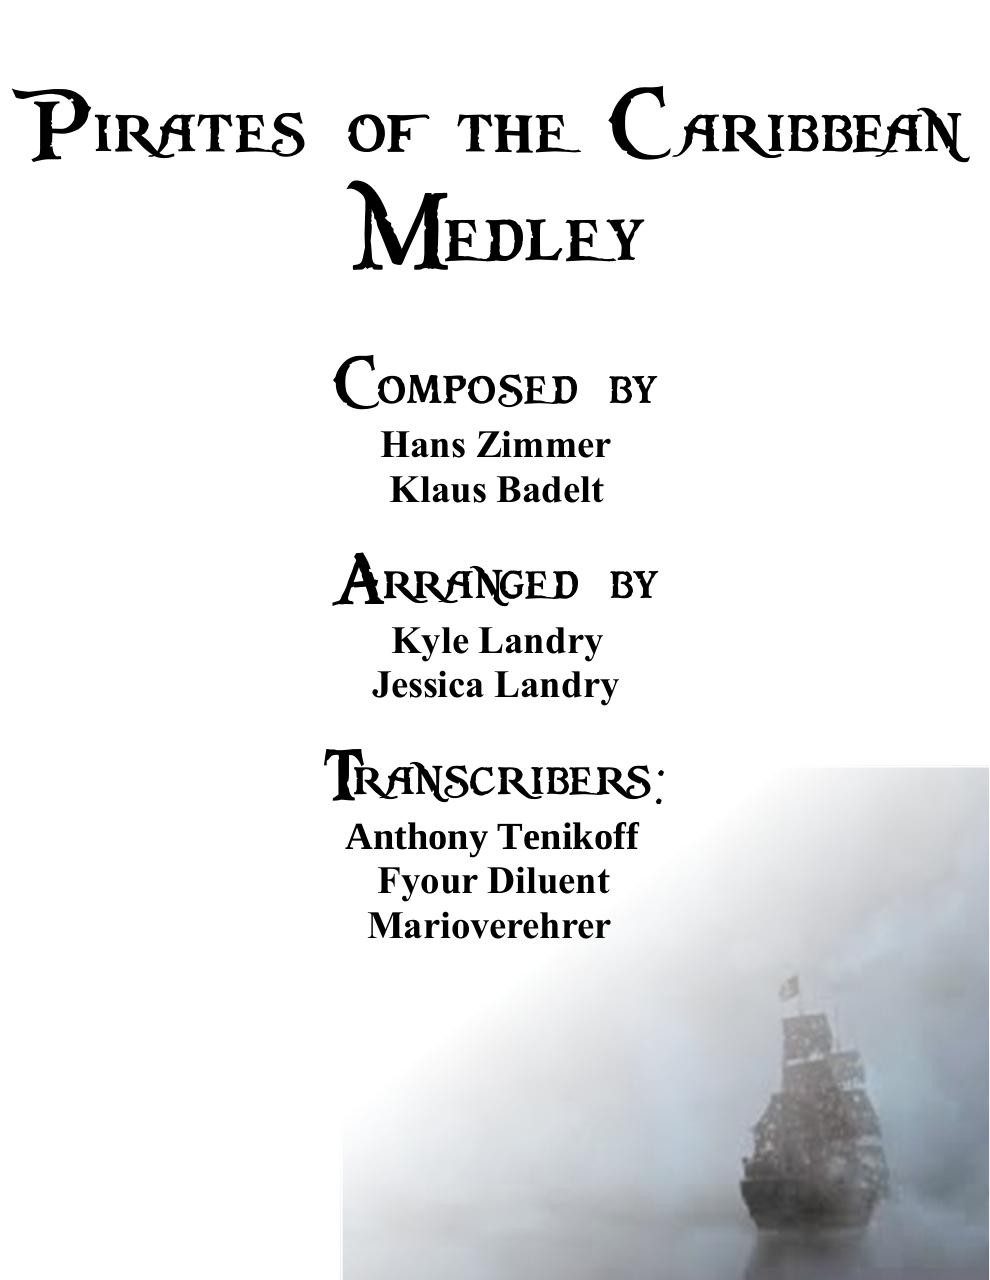 Pirates of the Caribbean Medley.pdf - page 1/23